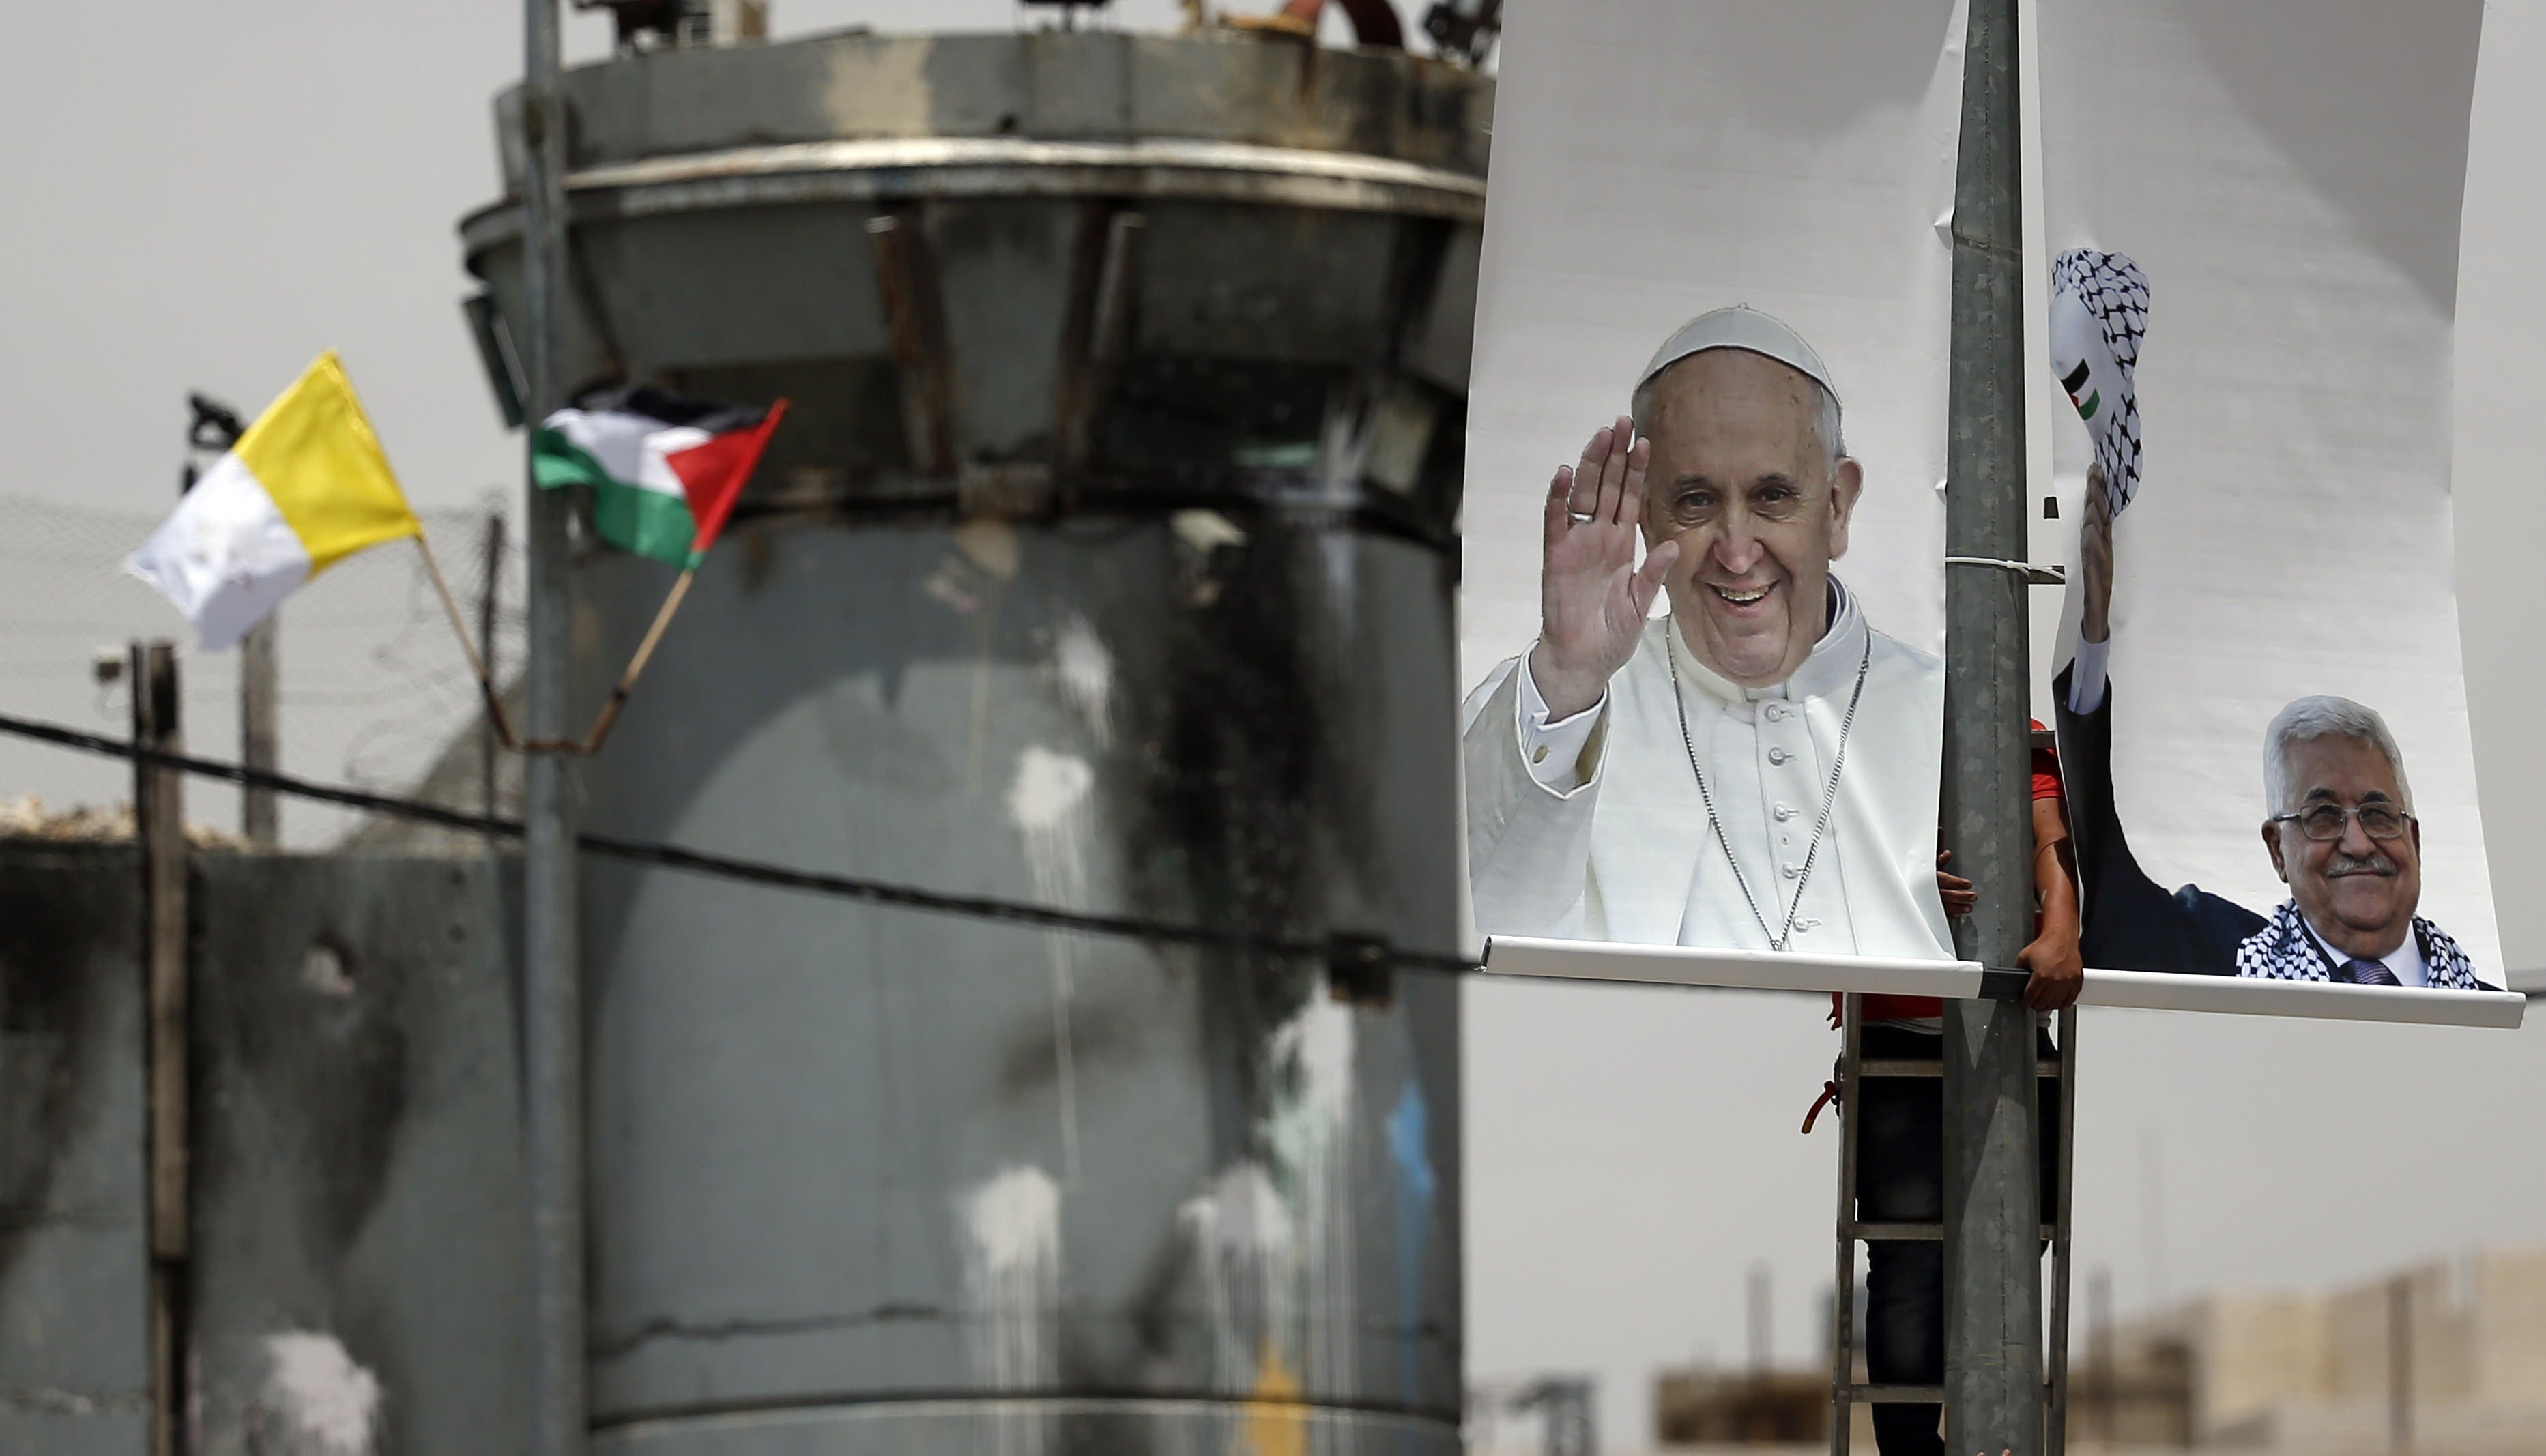 Palestinians gear up for Pope's visit